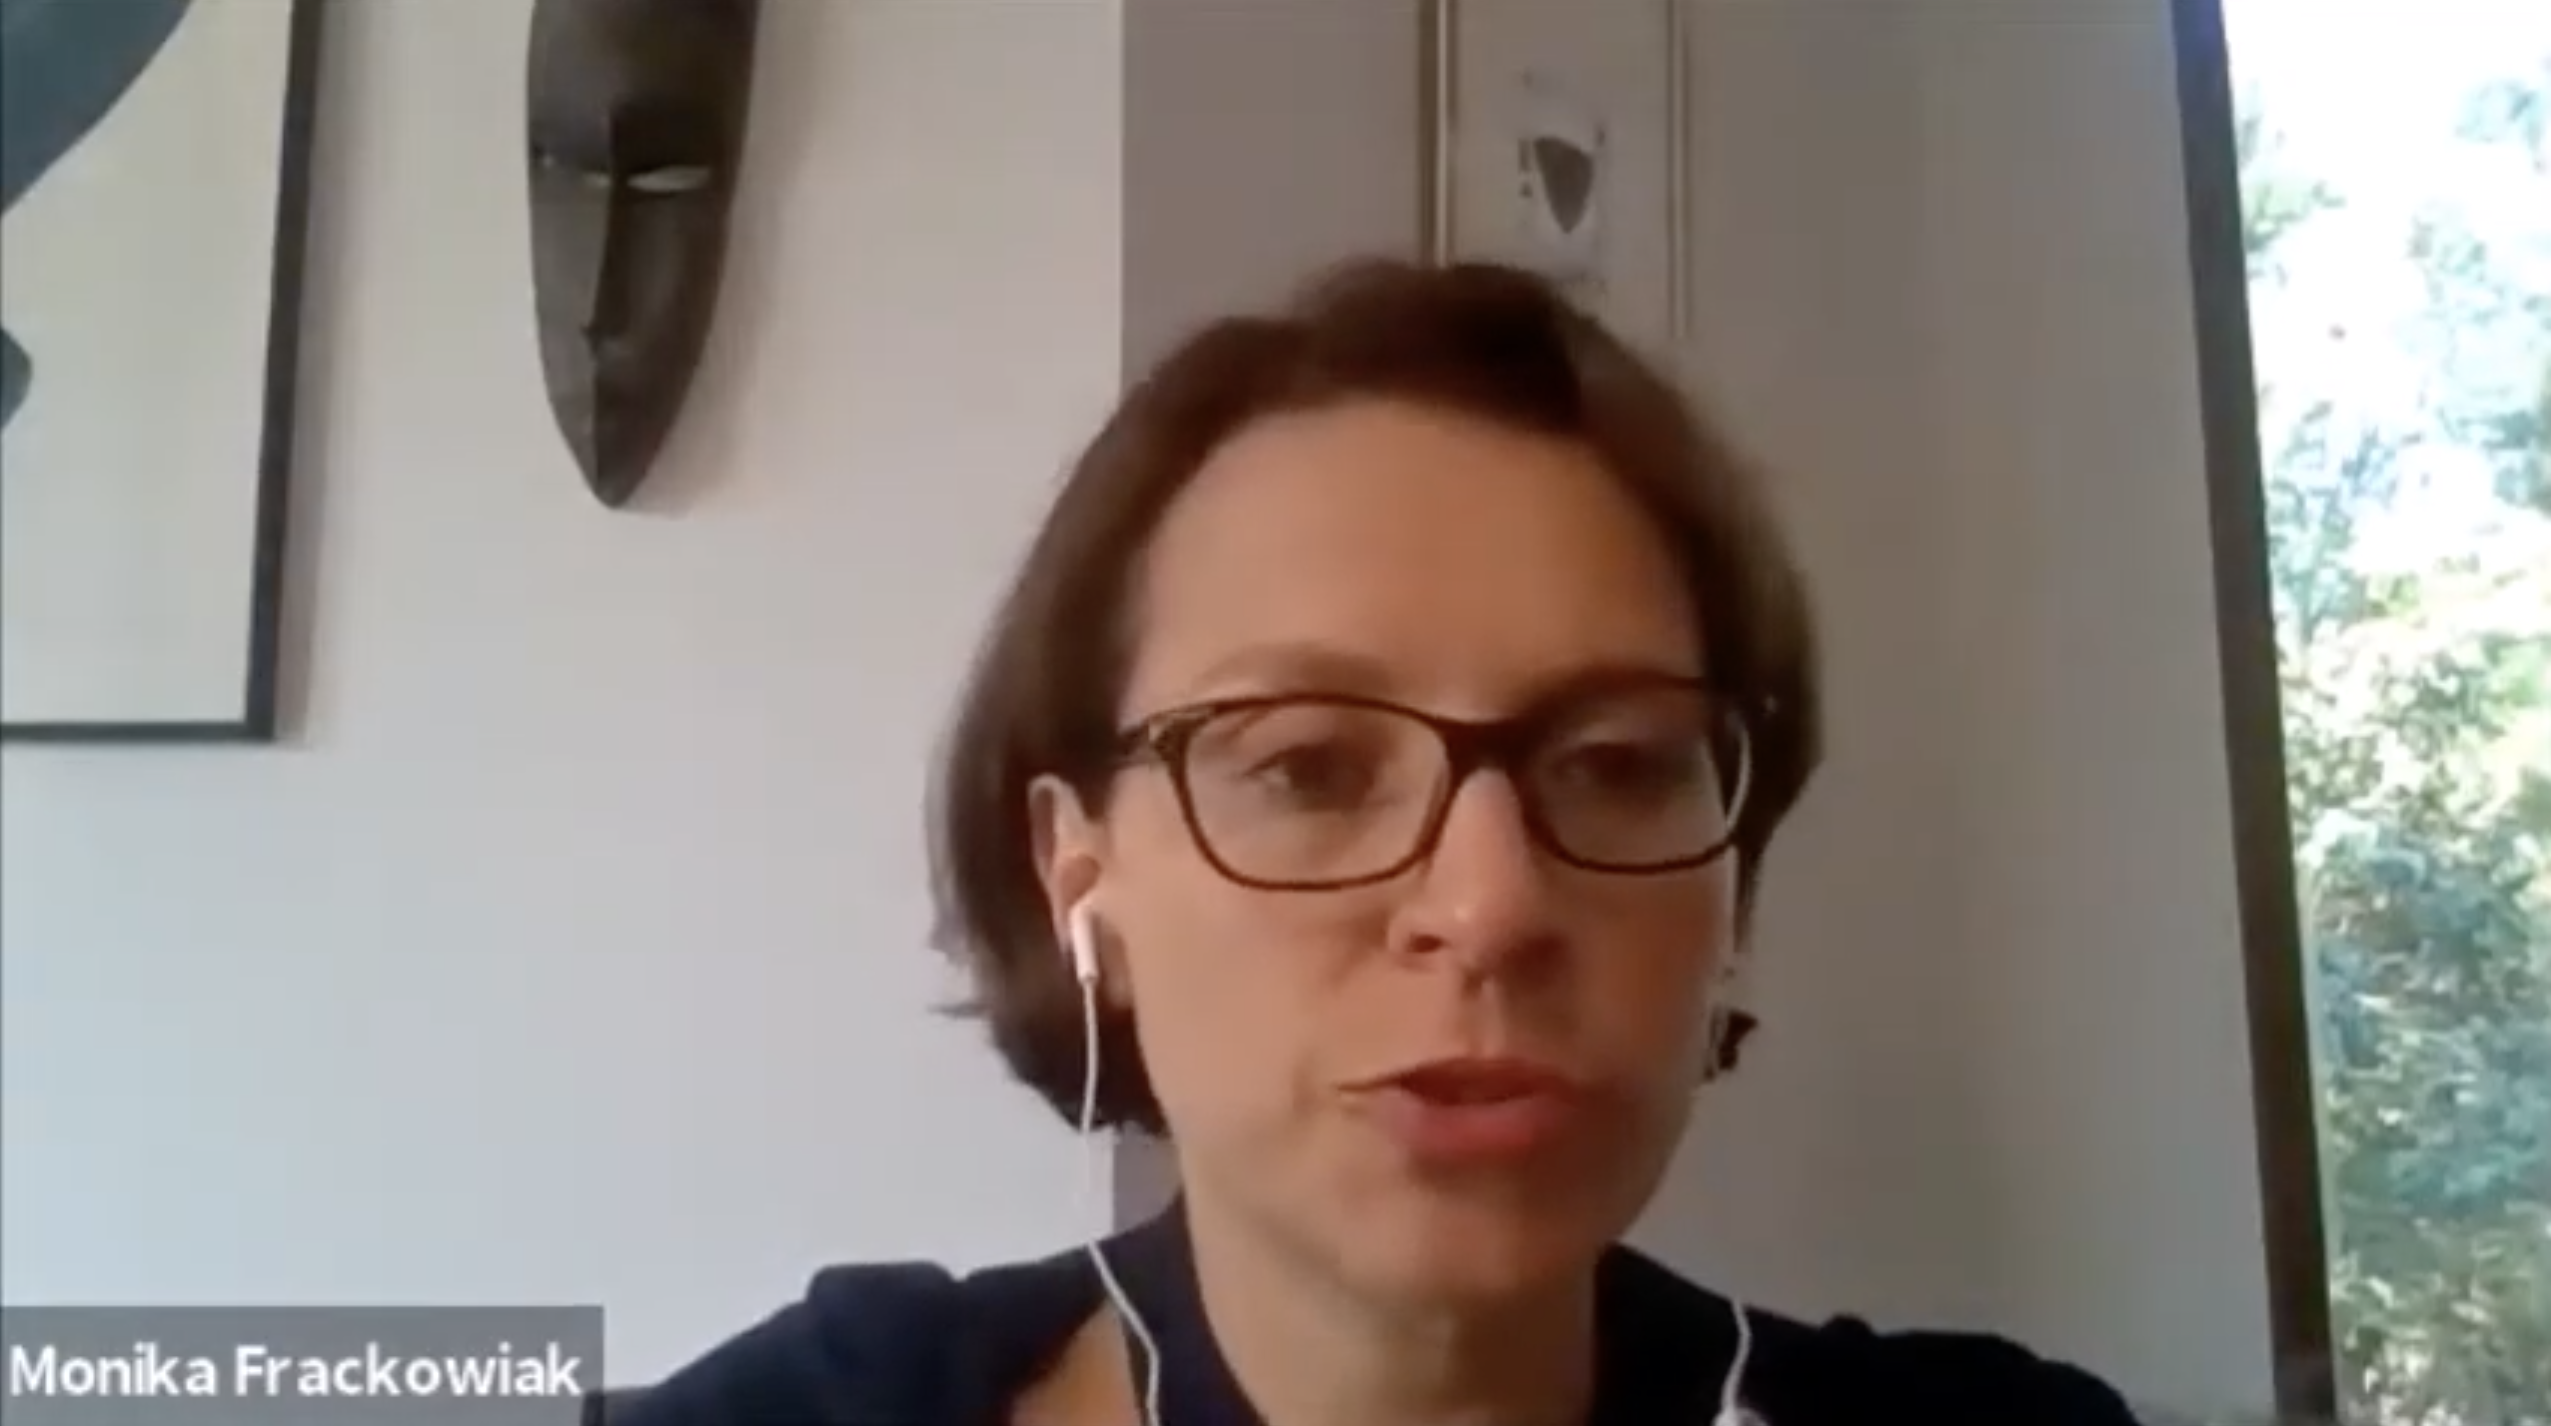 Interview of Monika Frackowiak about the rule of law breaches taking place in Poland